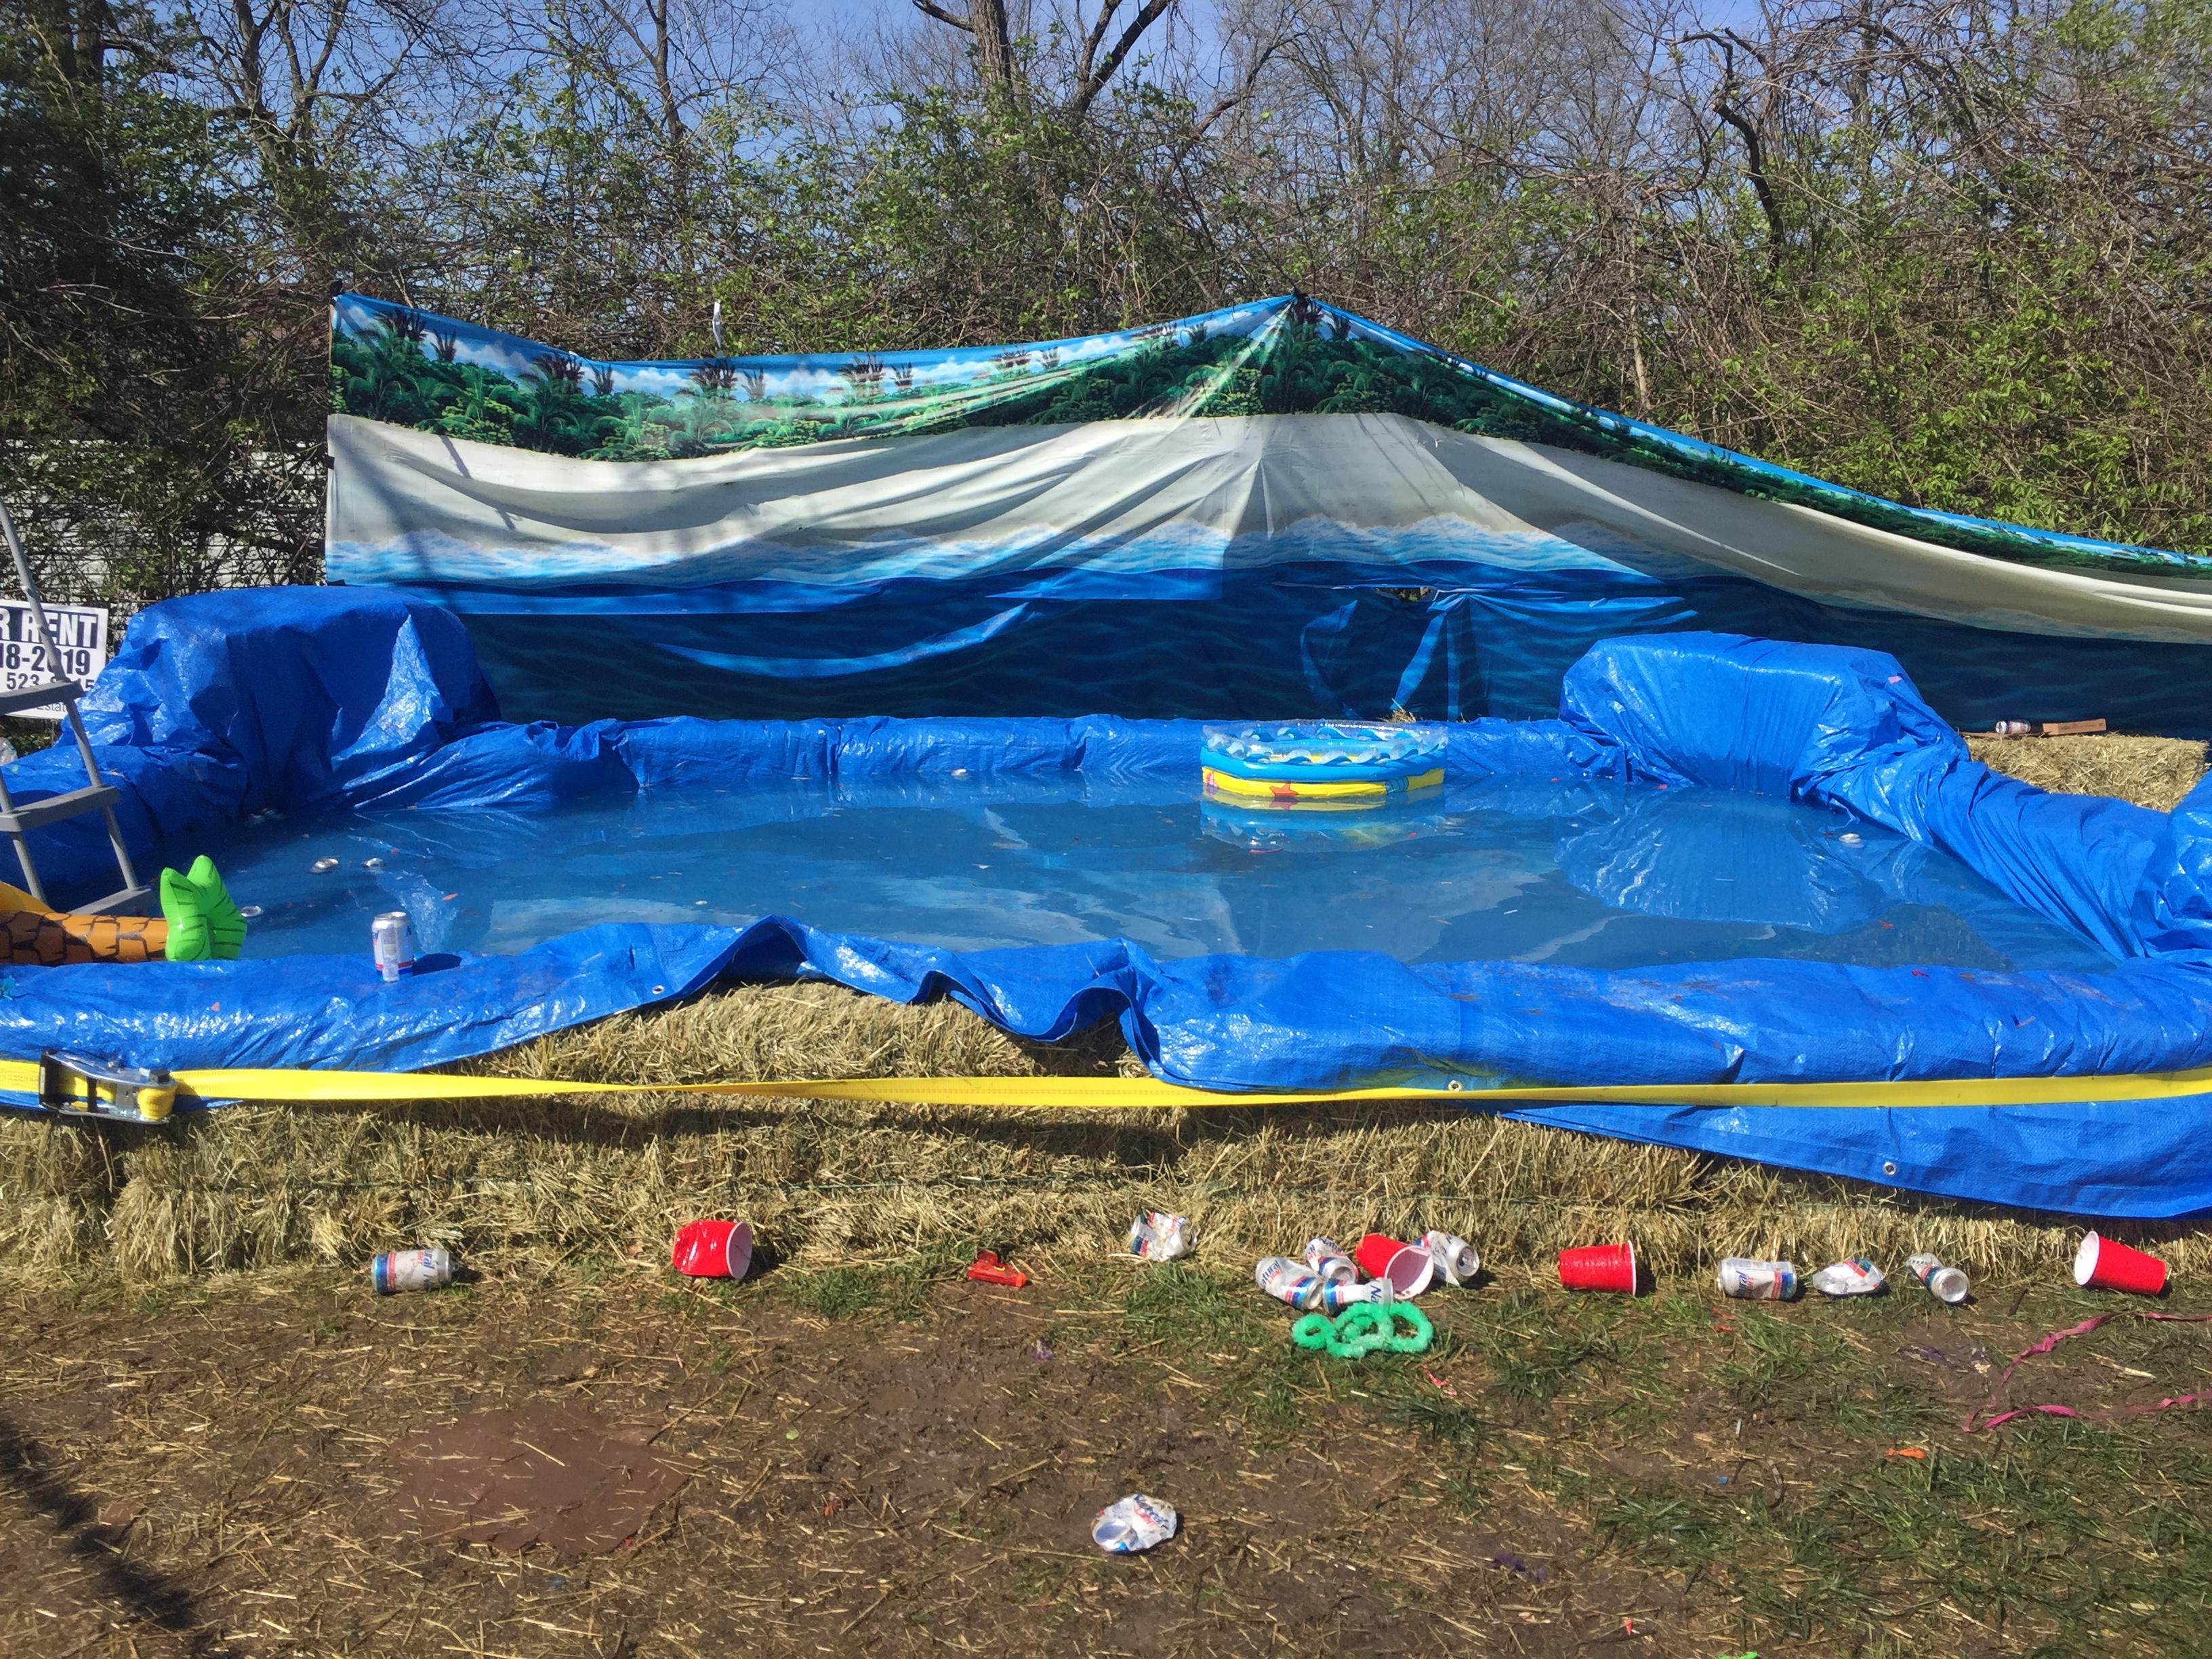 WSU basketball player injured at party off campus while jumping into makeshift pool (Photo courtesy Oxford Police)